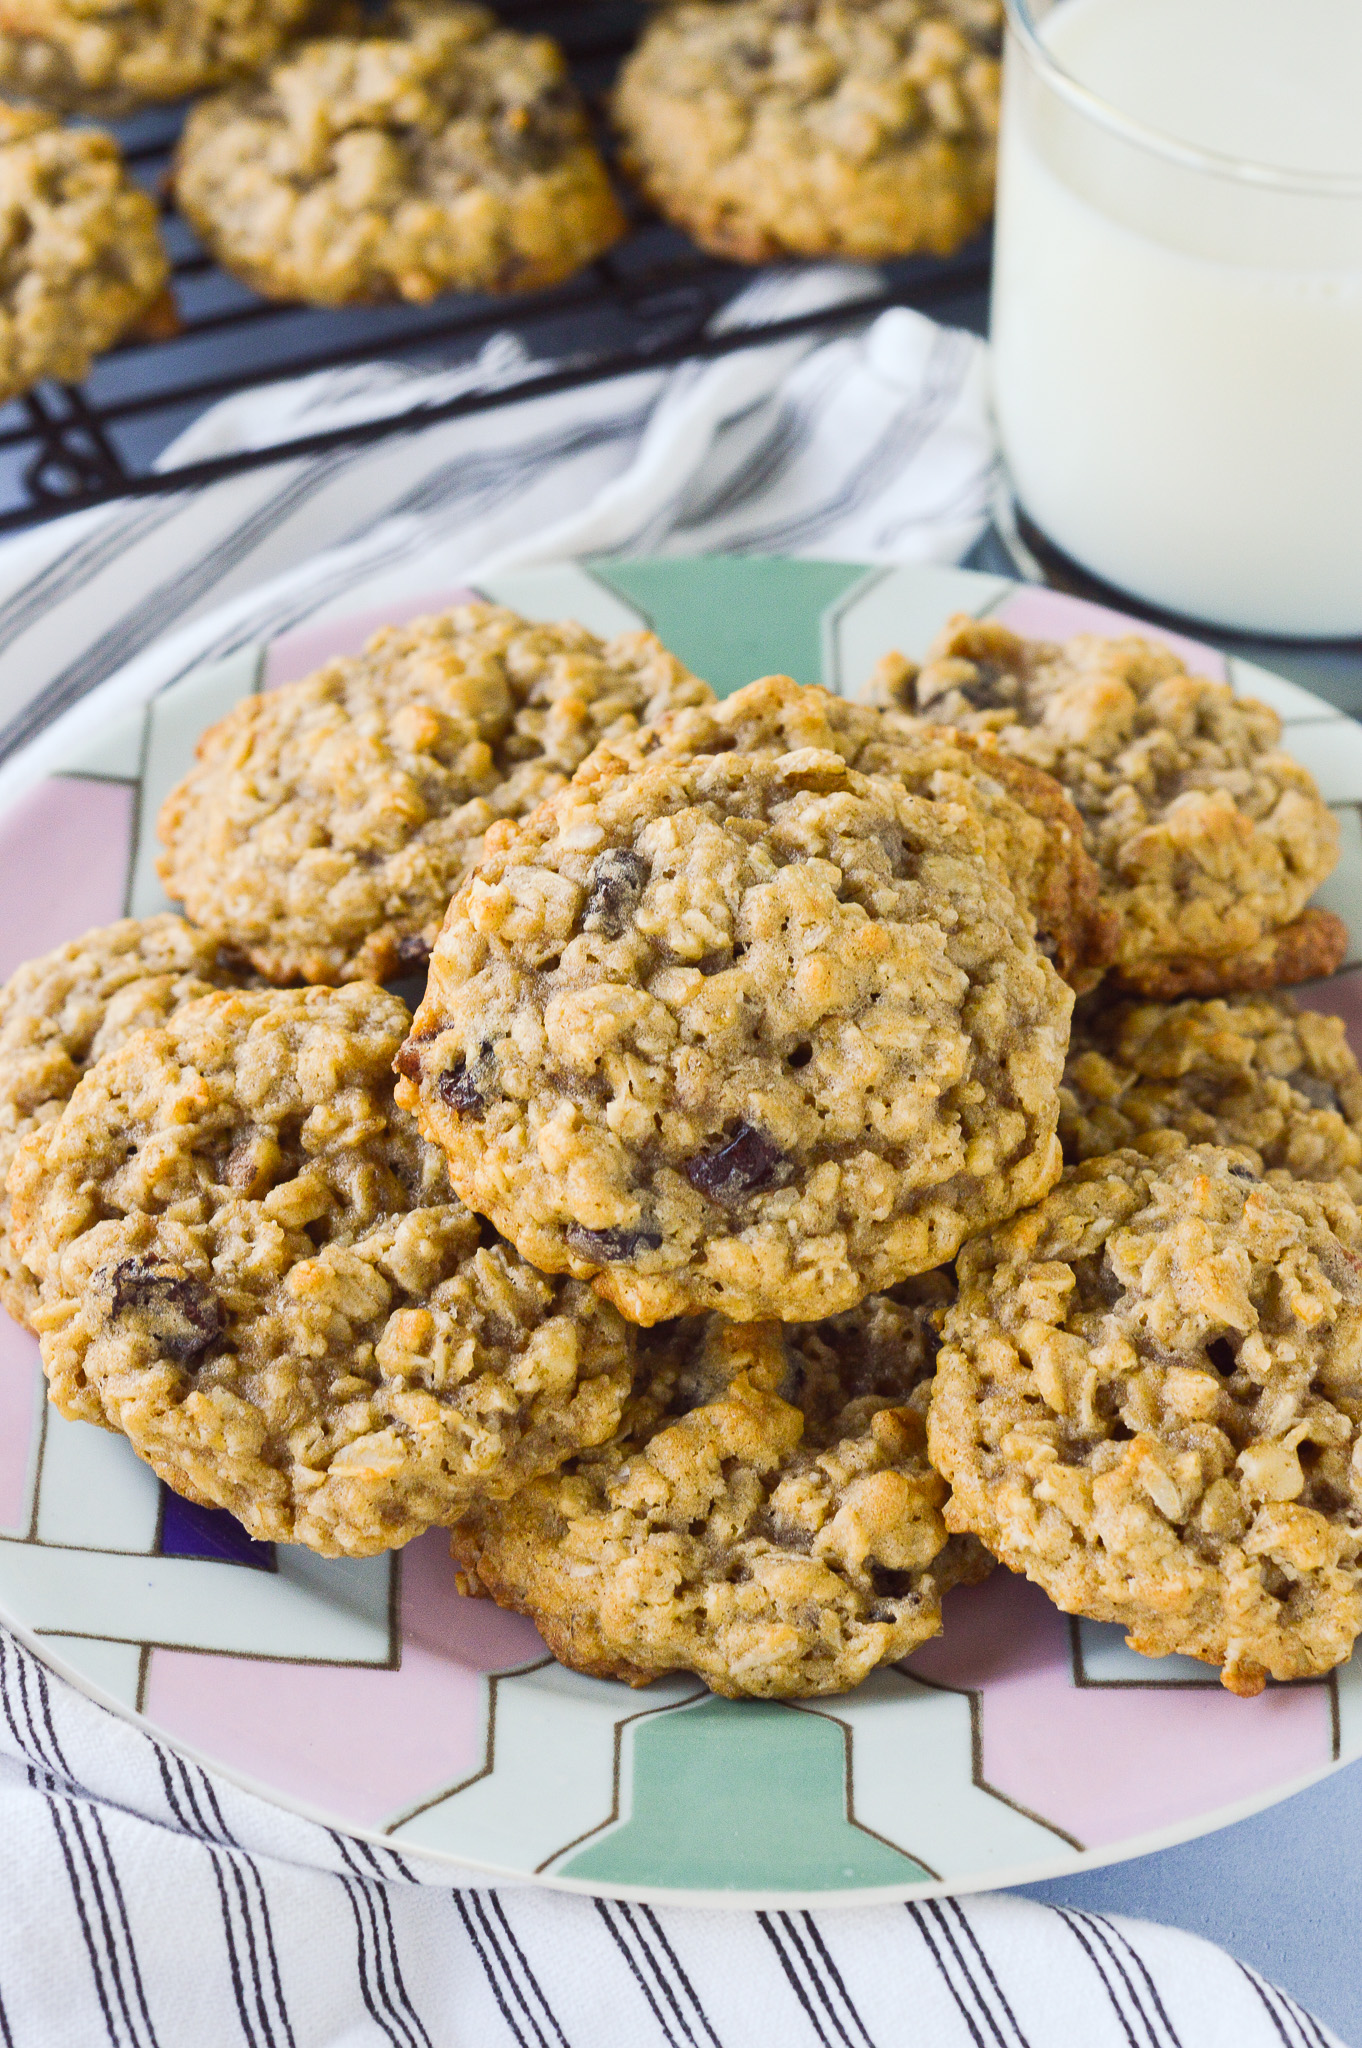 Thick chewy oatmeal raisin cookies piled on a plate with a glass of milk nearby.